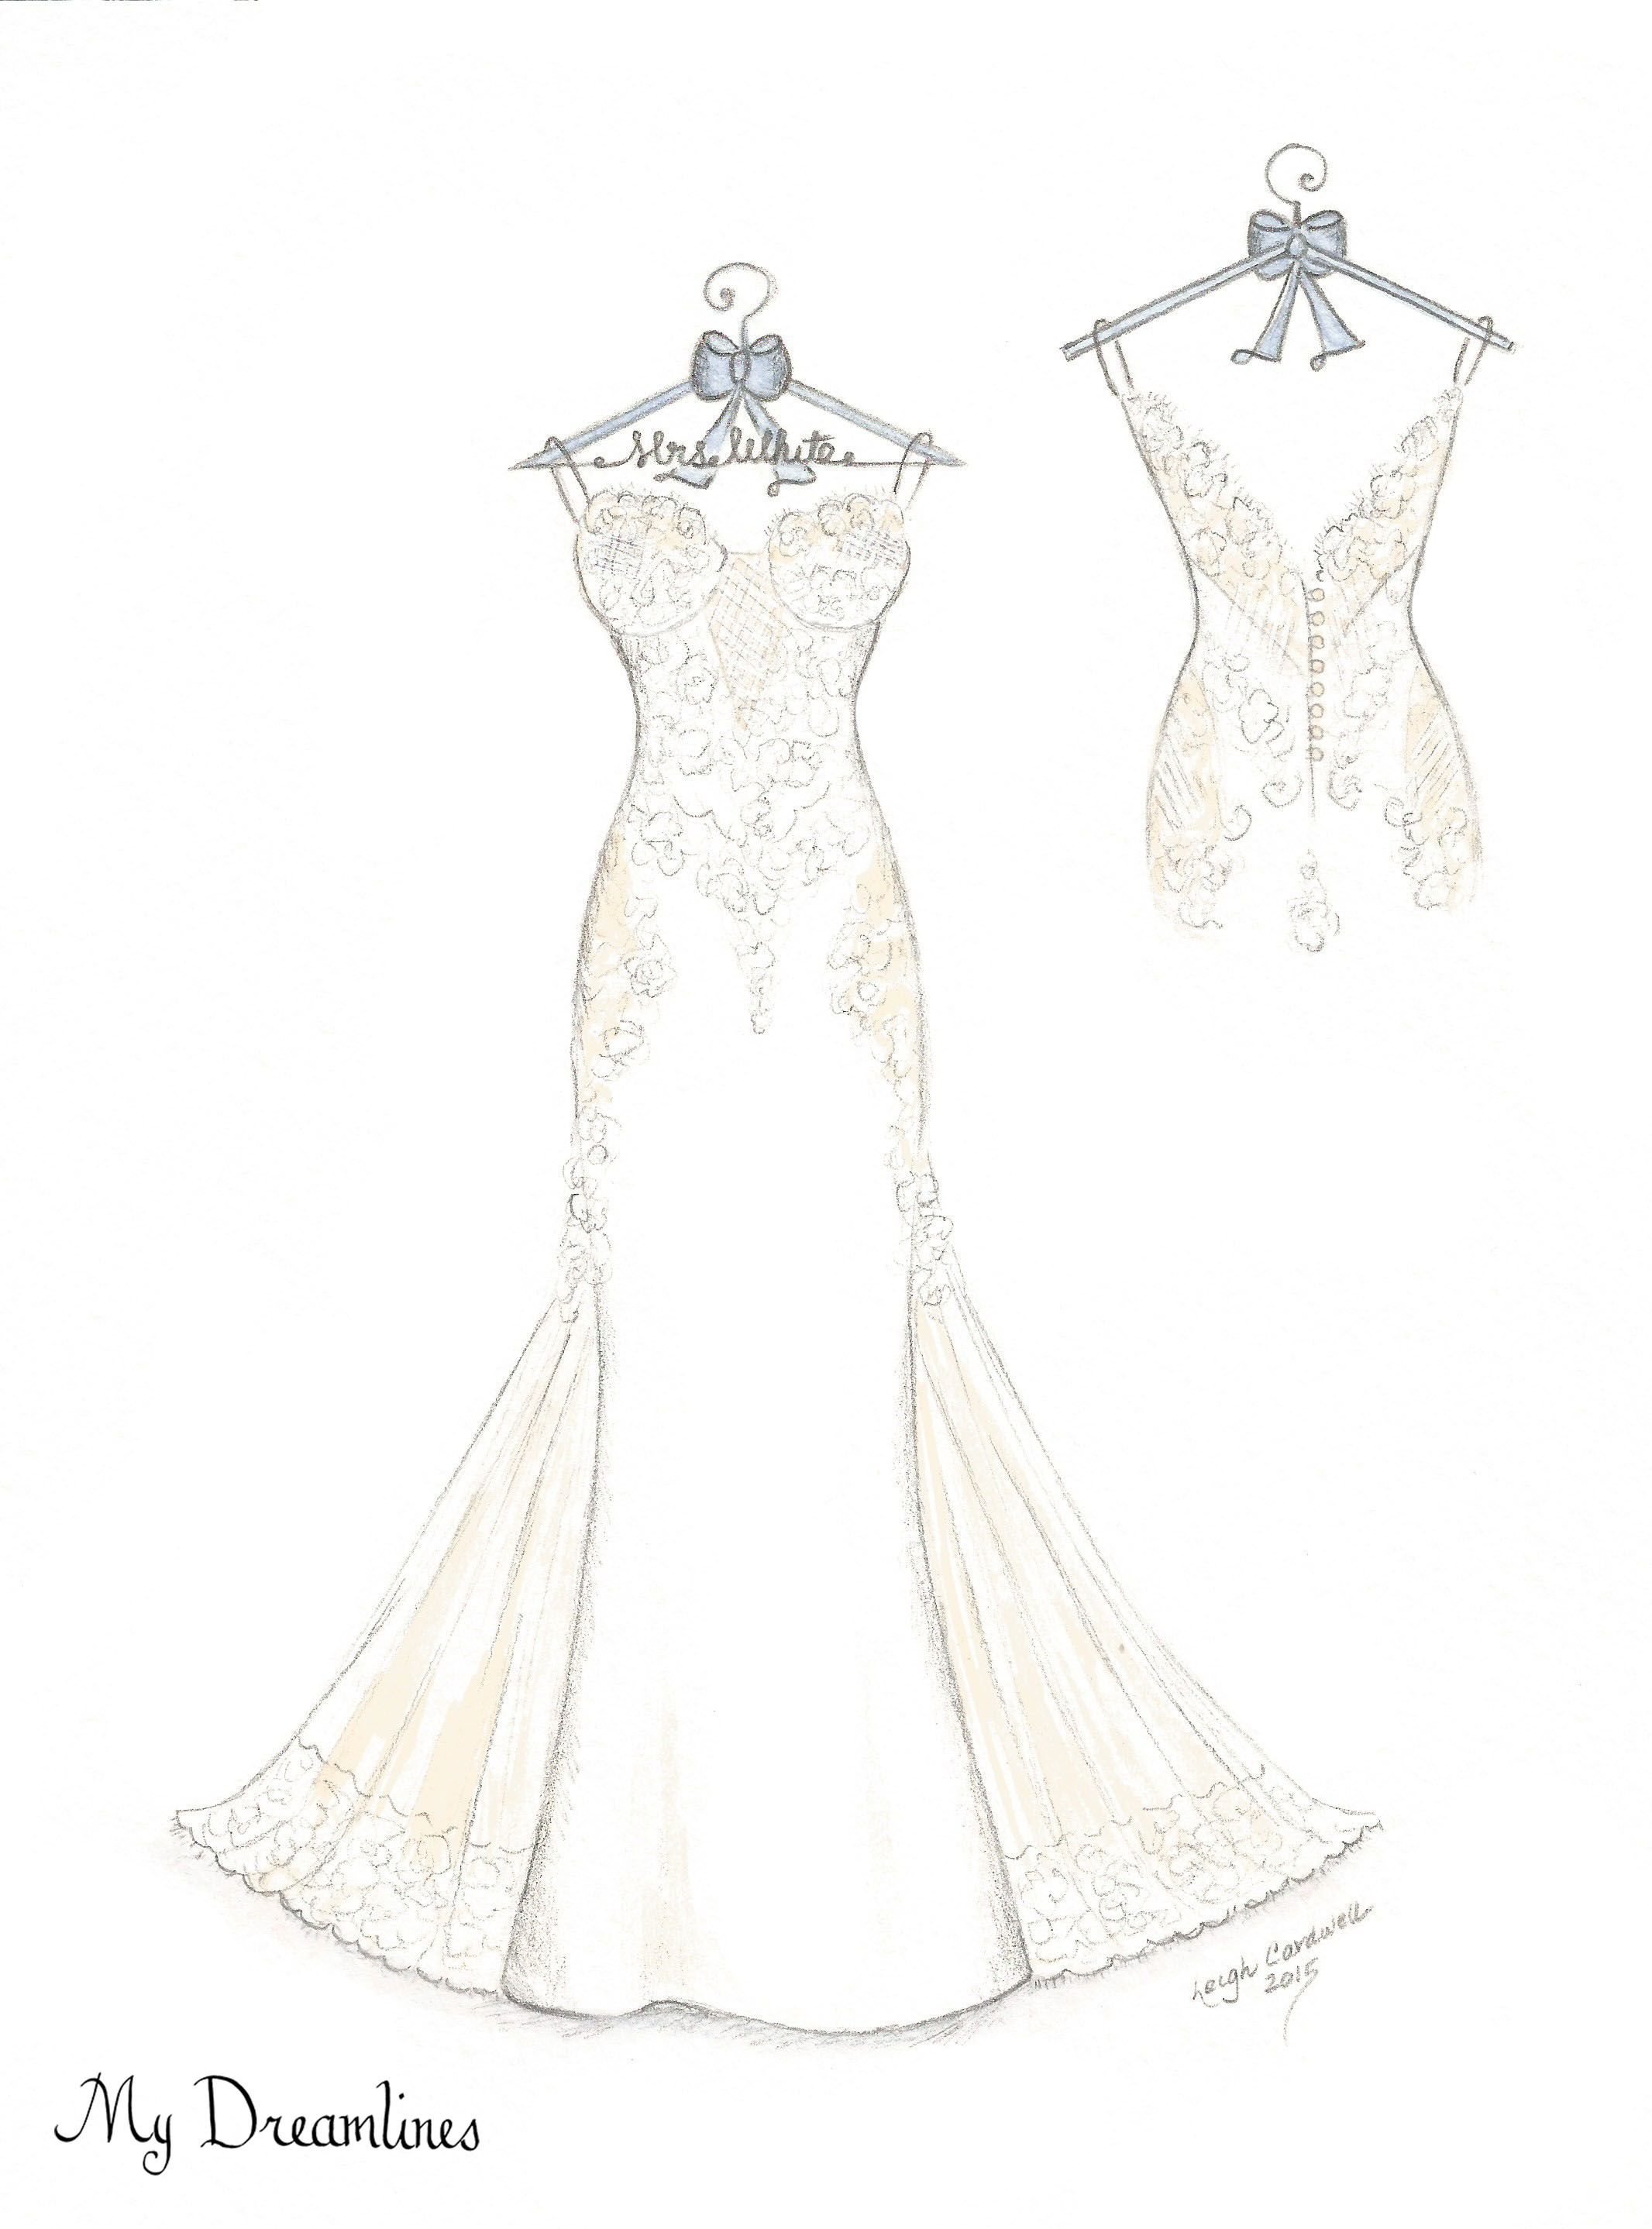 Dreamlines Wedding Dress Sketch Give As An Anniversary Gift From